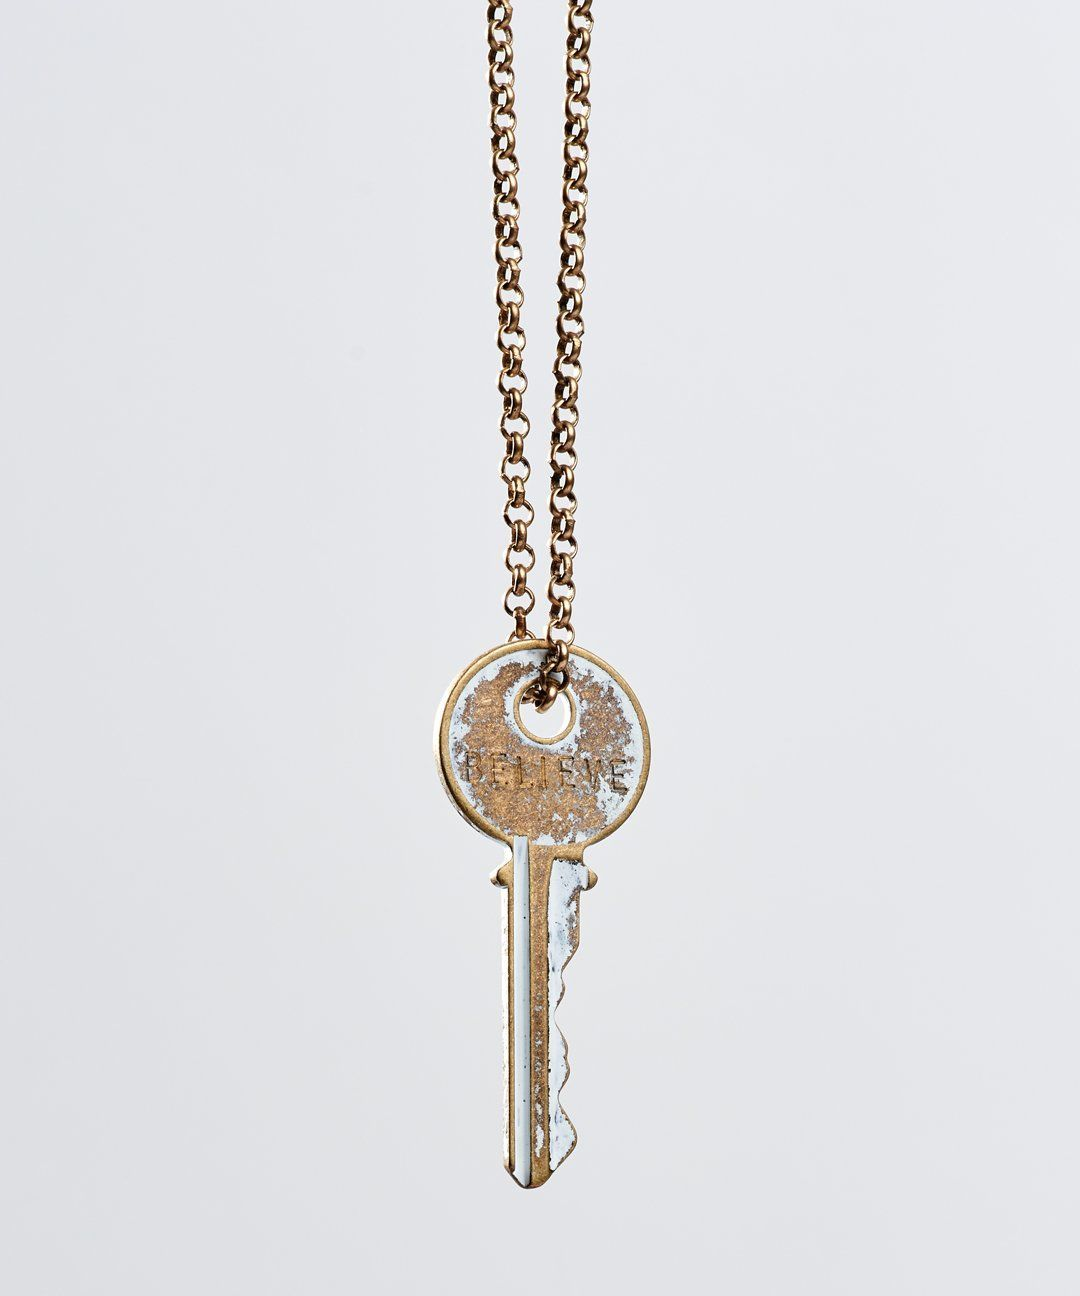 White Patina Classic Key Necklace Necklaces The Giving Keys Believe WHITE